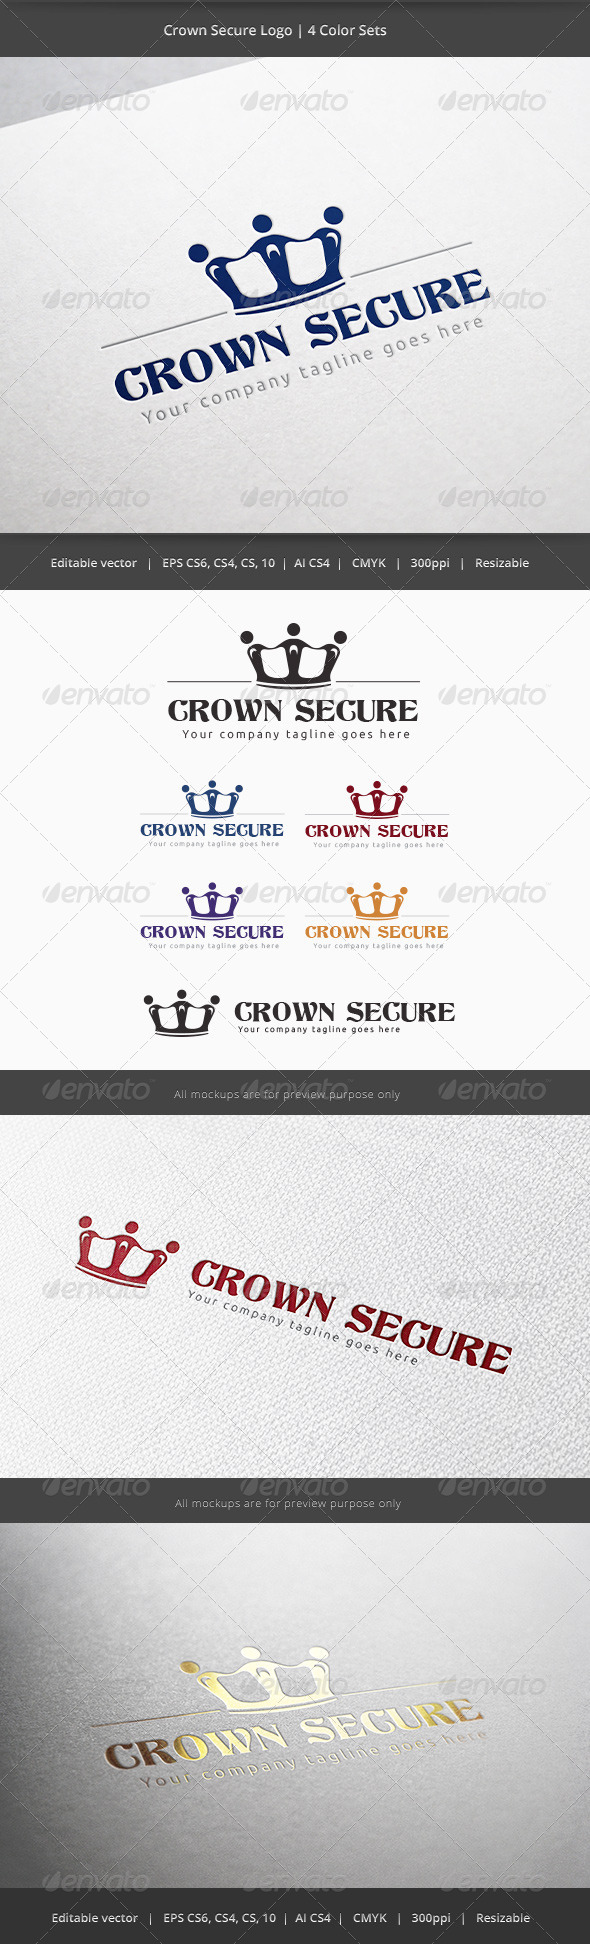 Crown Secure Logo - Objects Logo Templates